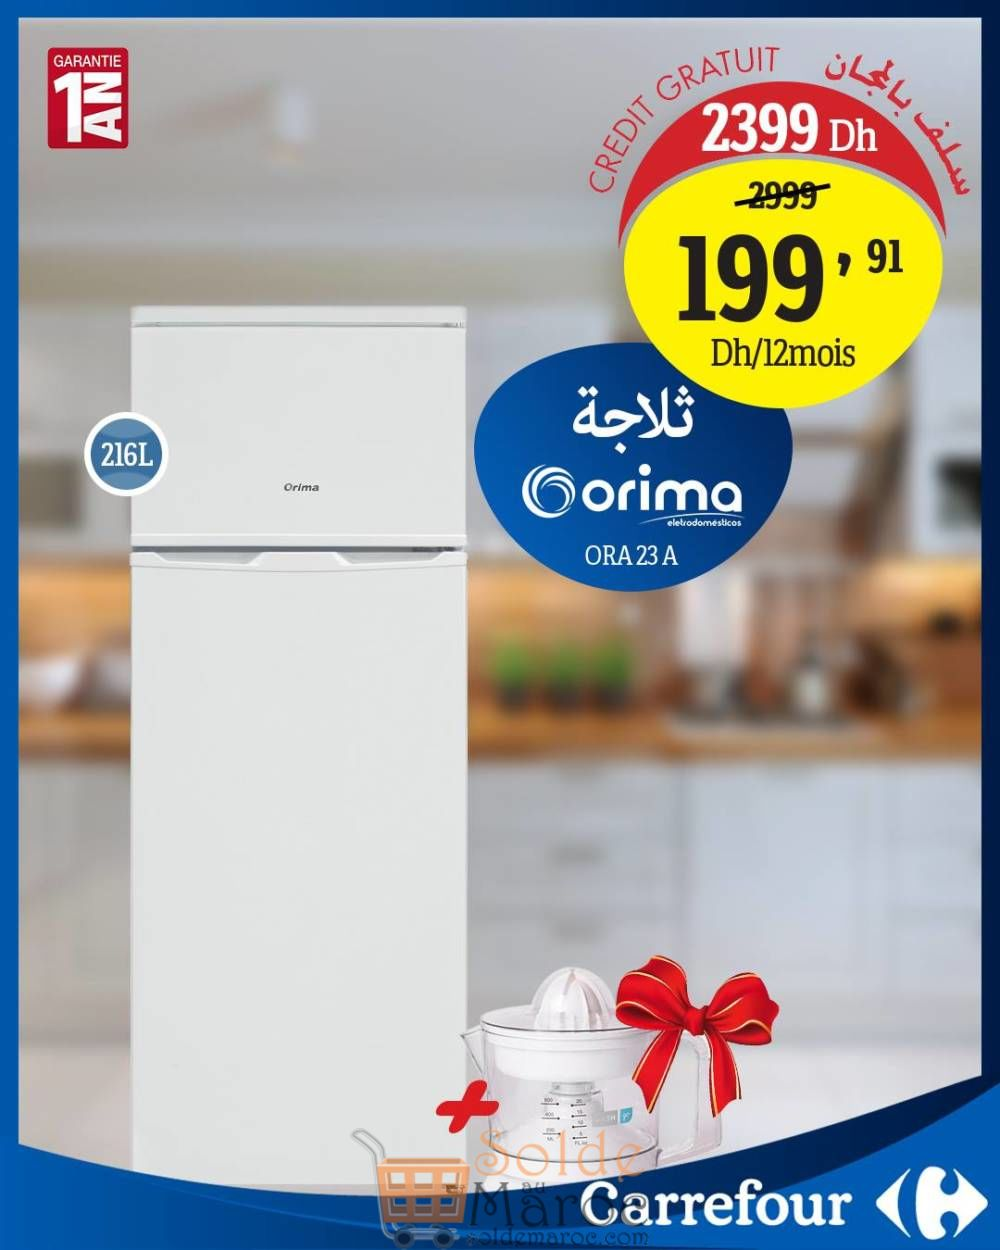 Promo Carrefour Maroc Grand Electroménager